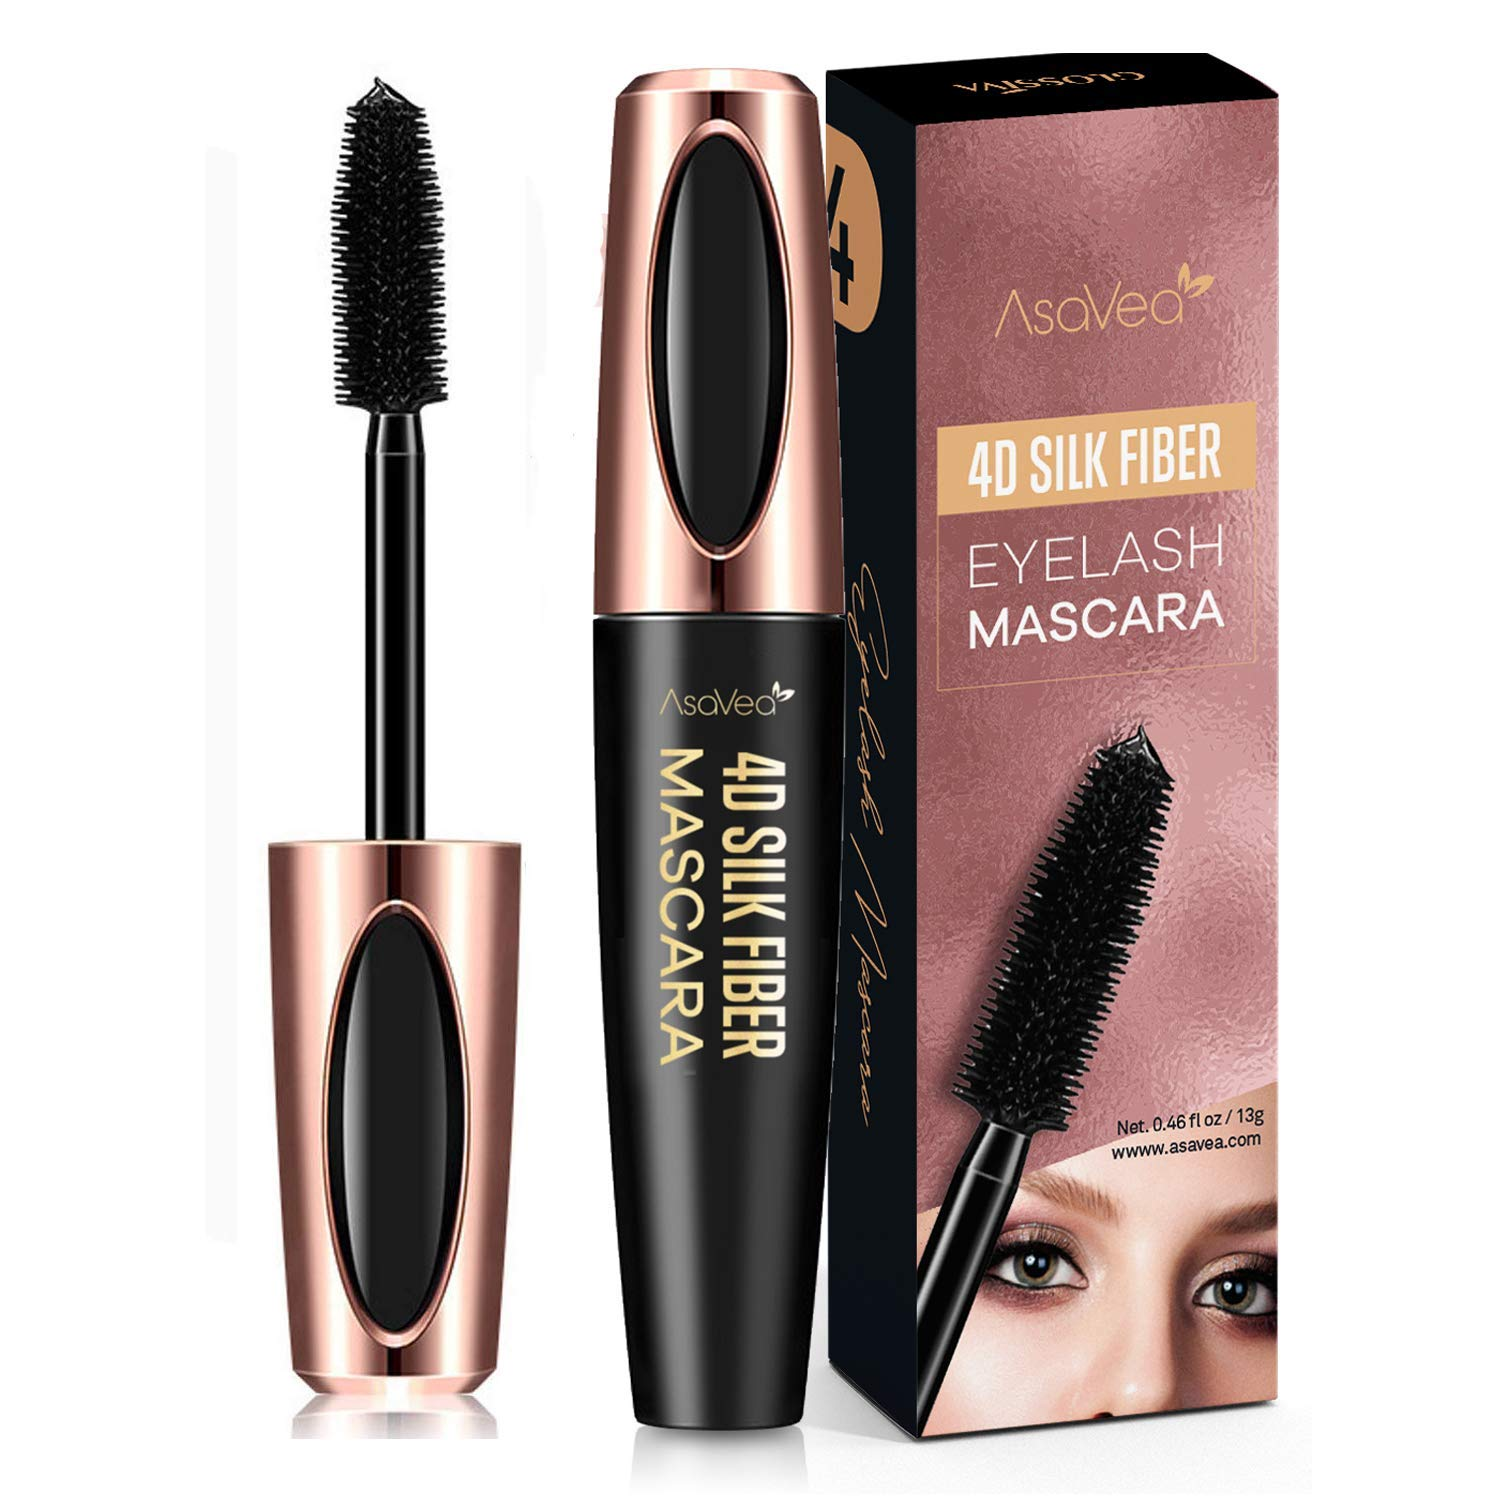 09f2308eed7 AsaVea 4D Silk Fiber Lash Mascara Waterproof, Luxuriously Longer, Thicker,  Voluminous Eyelashes,